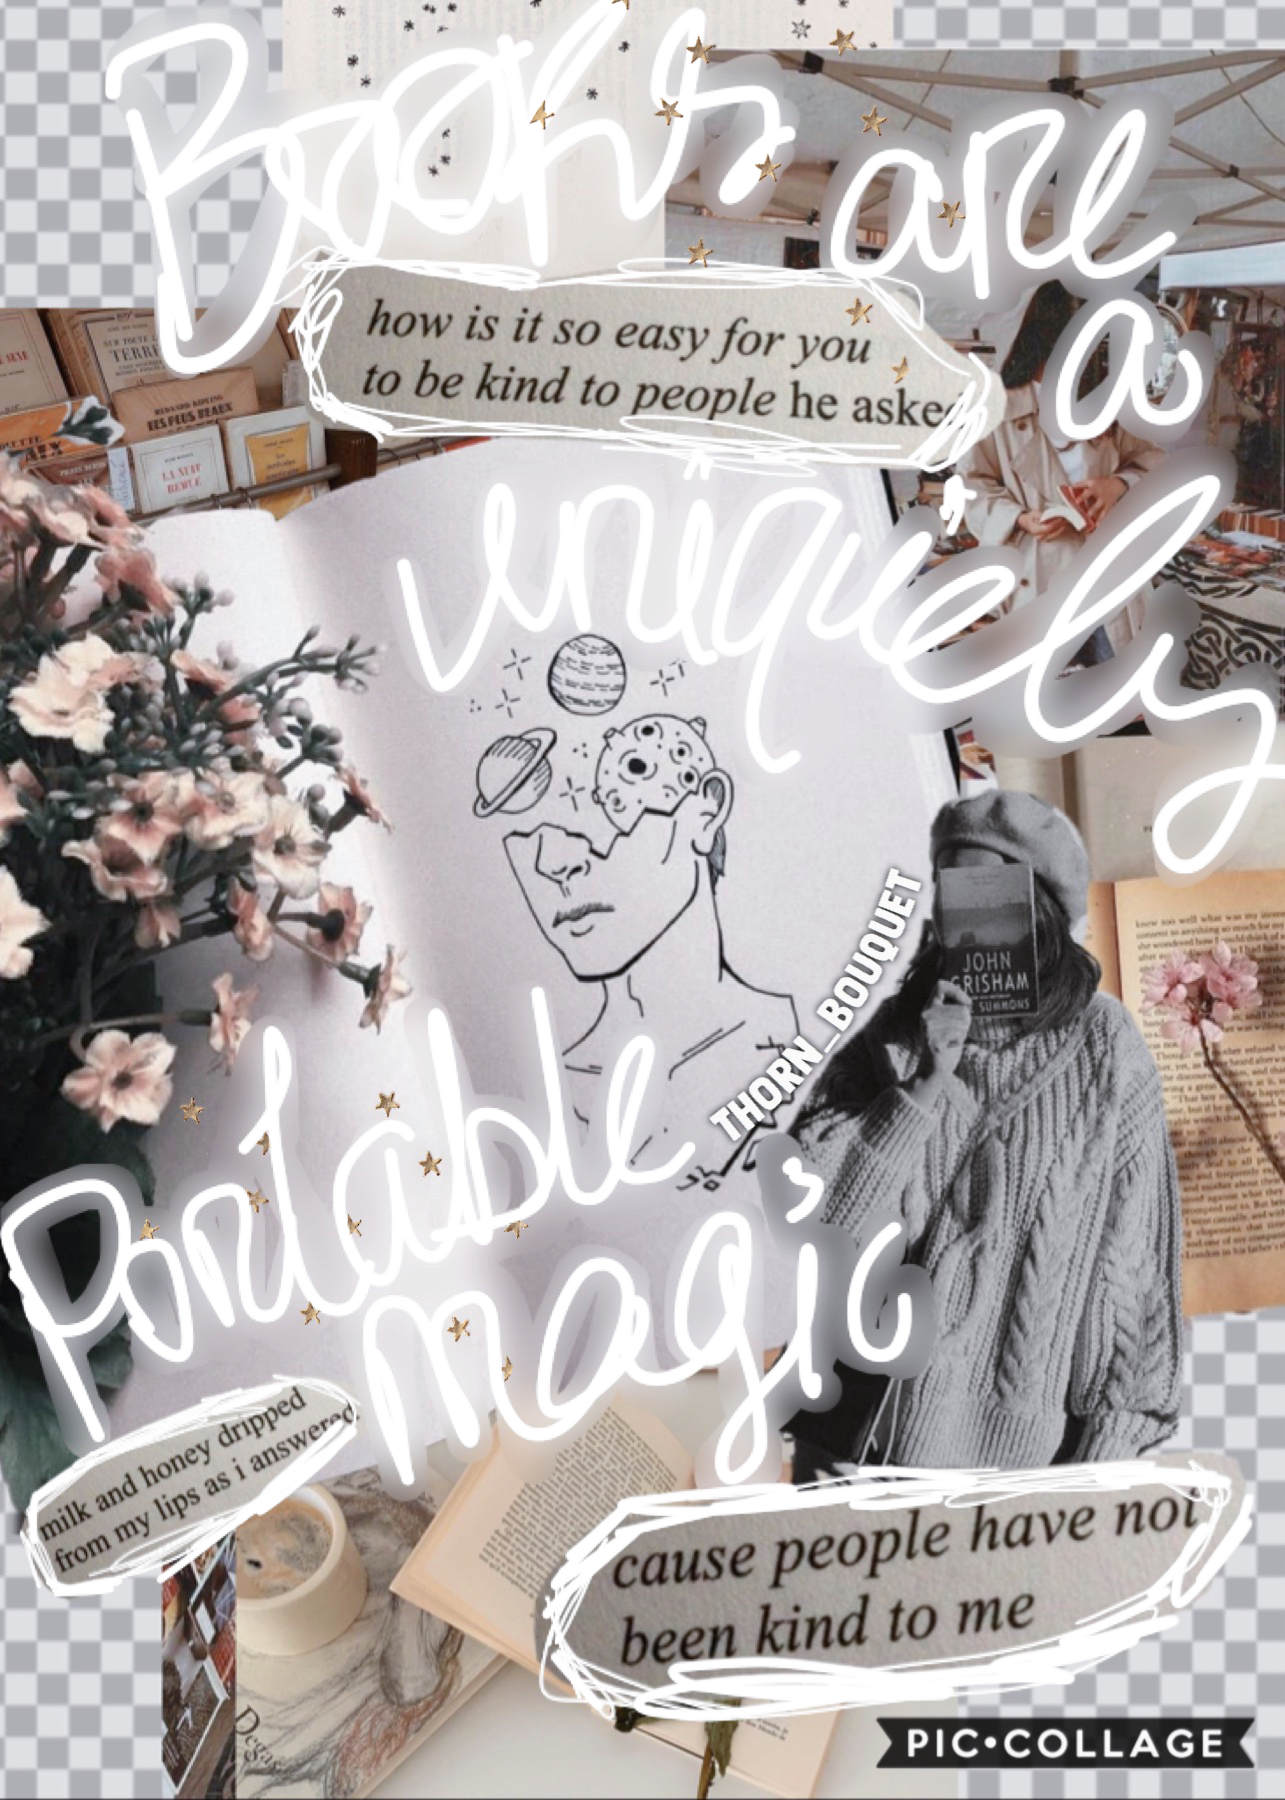 🤍 tappity tap 🔏  eeek I feel like I found my style :)  _agghhh I feel so happi lately I never thought everyone was this friendly on piccollage 💖  QOTD: read or write? 📖